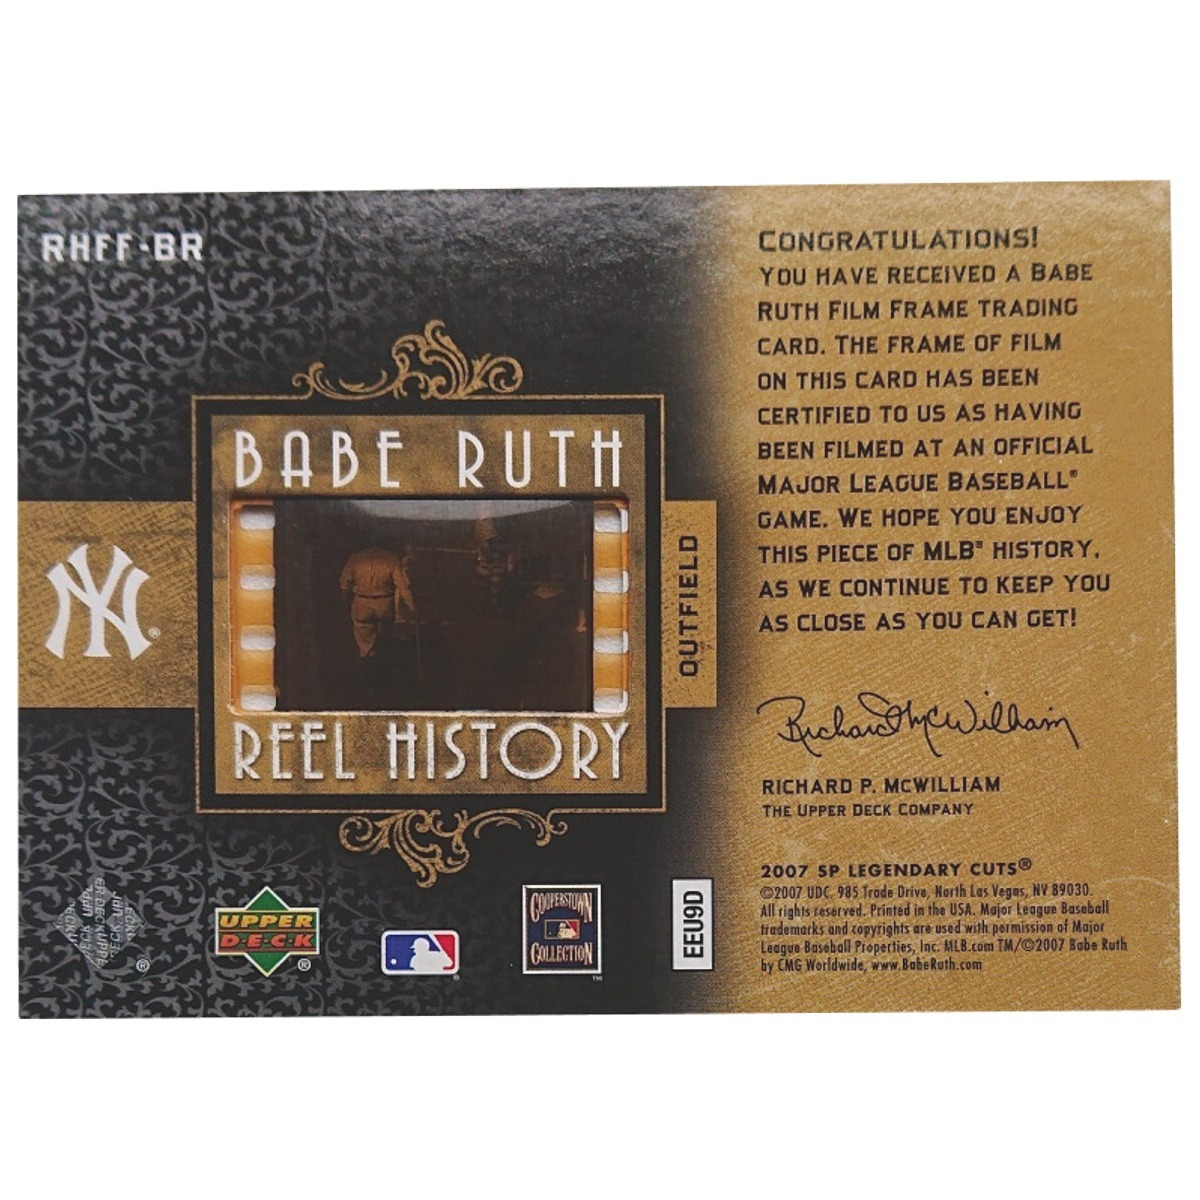 【1 of 1 Film】 Babe Ruth 2007 UD Sp Legendary Cuts Babe Ruth Reel History 1枚限定 ■検索:ベーブ・ルース フィルム カード 1/1_画像3